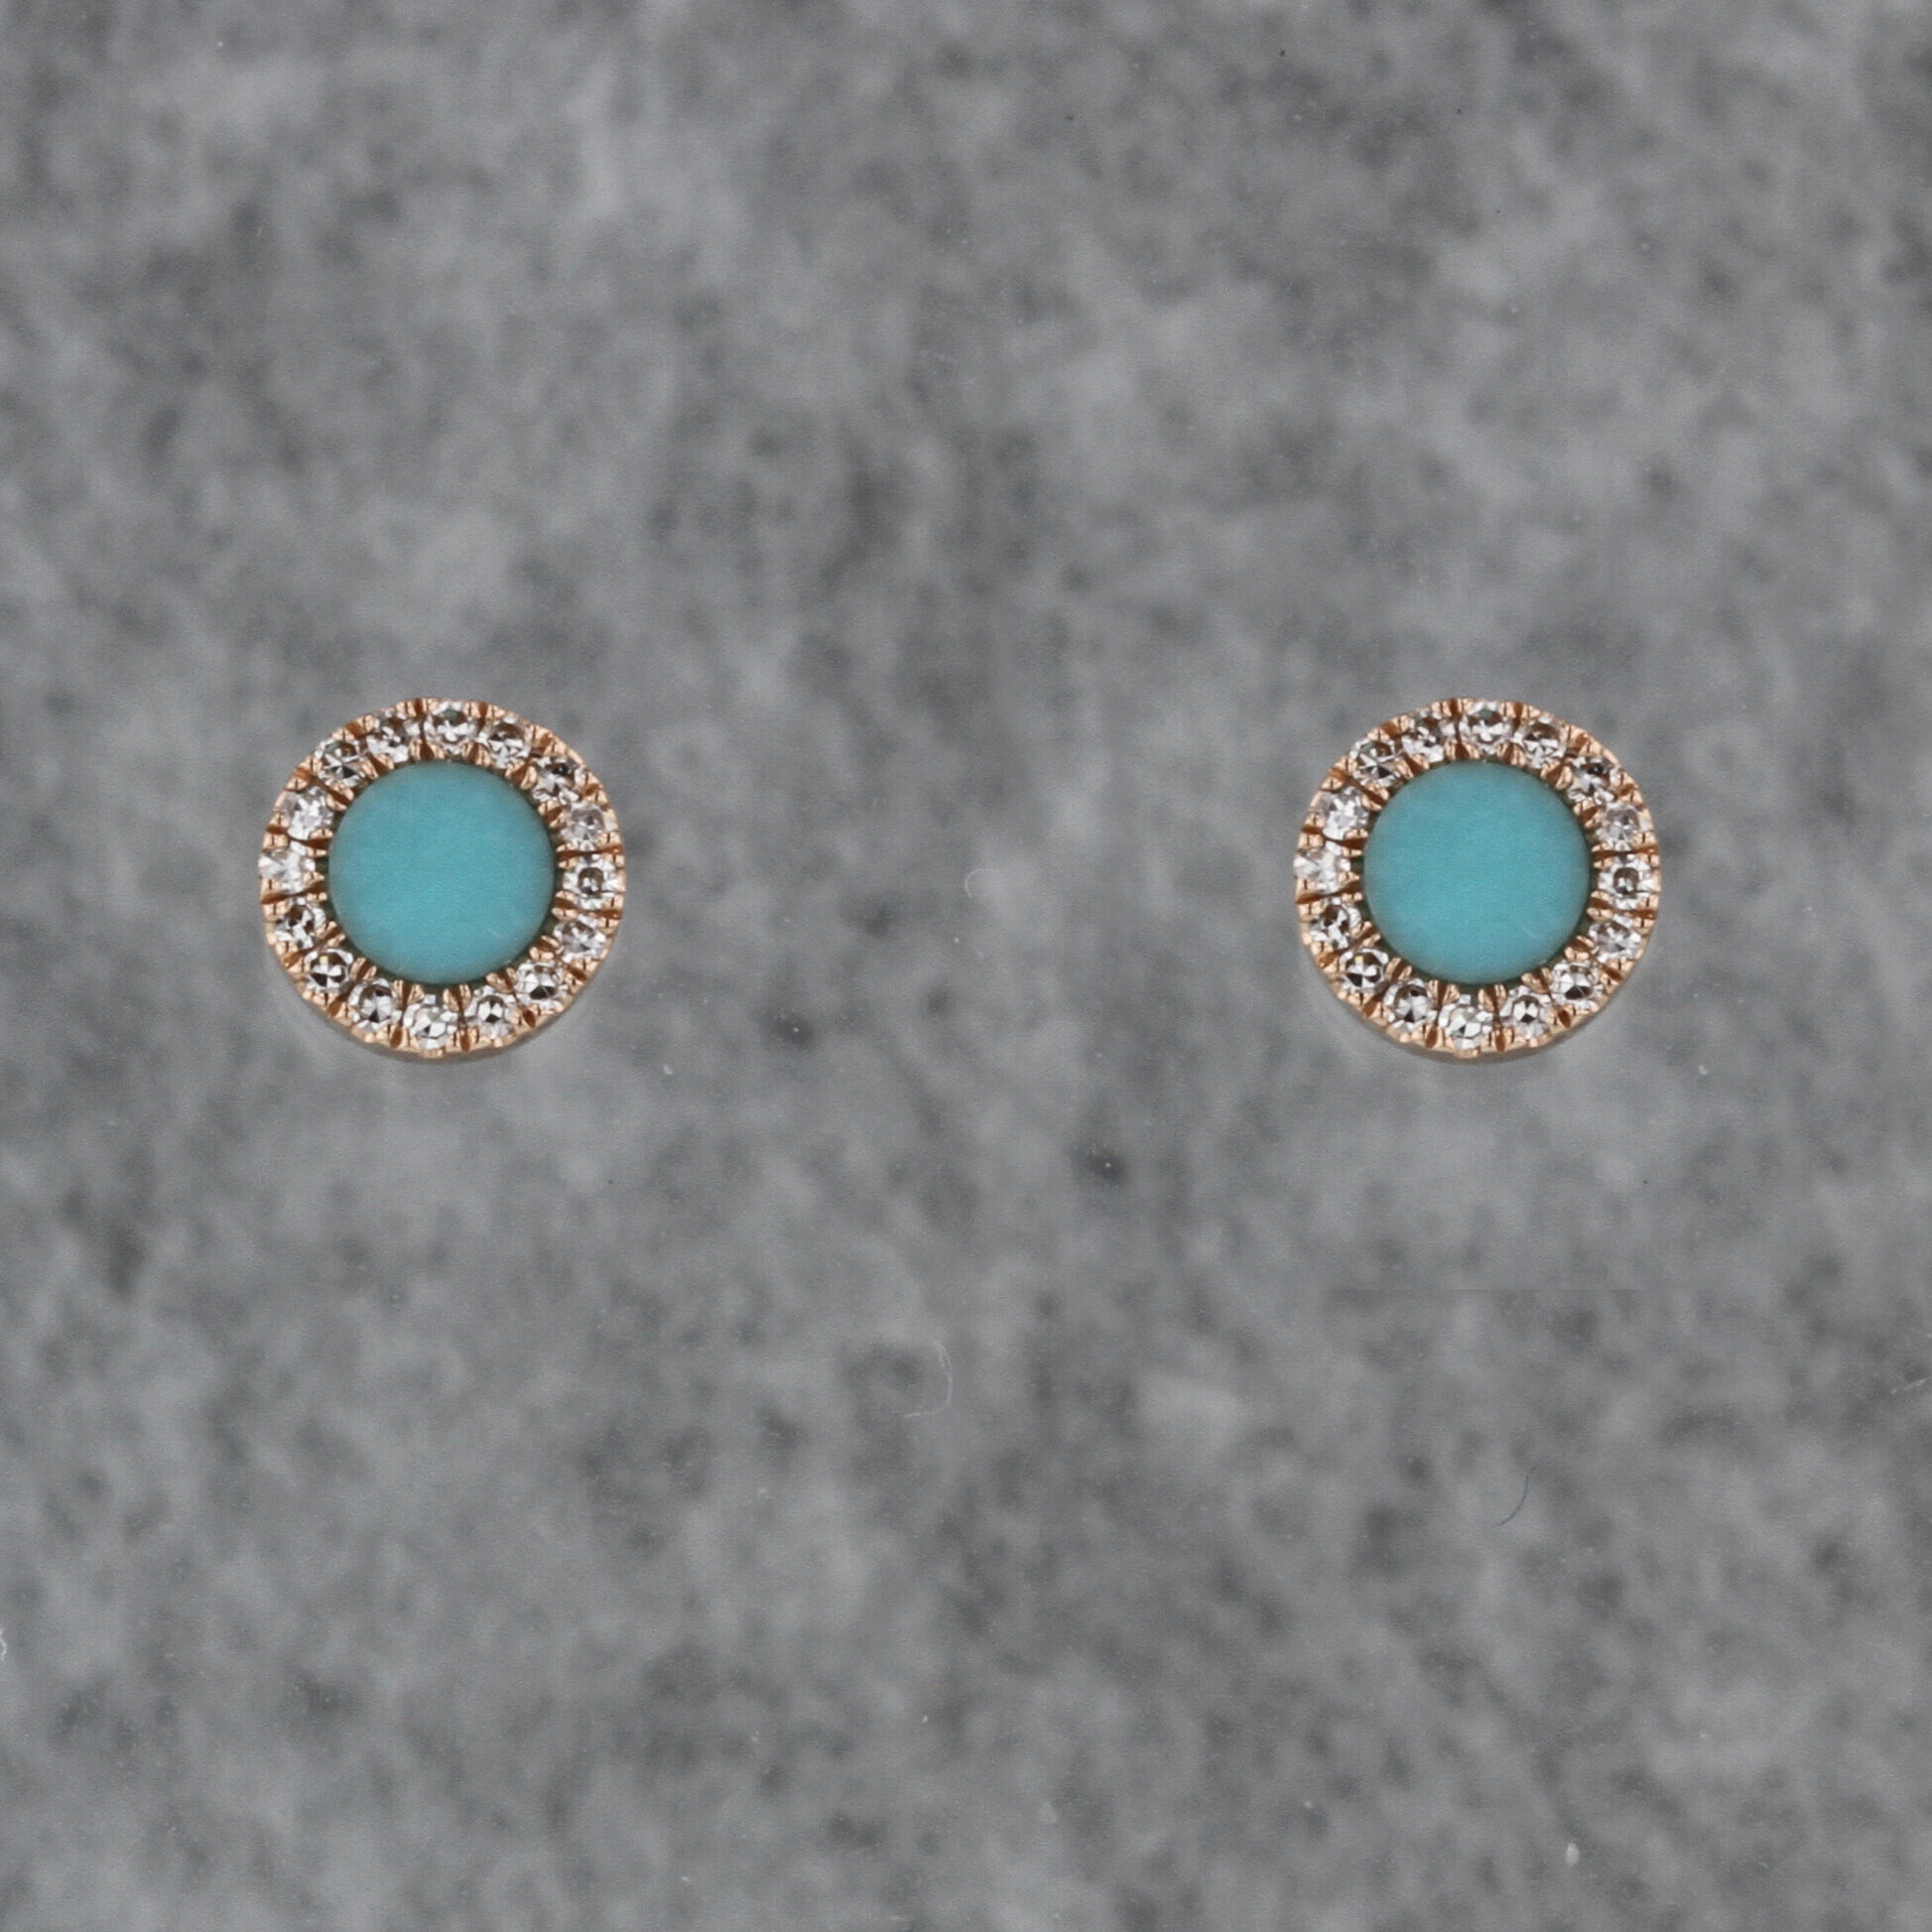 Rose Gold Turquoise And Diamond Stud Earrings Kizer Cummings